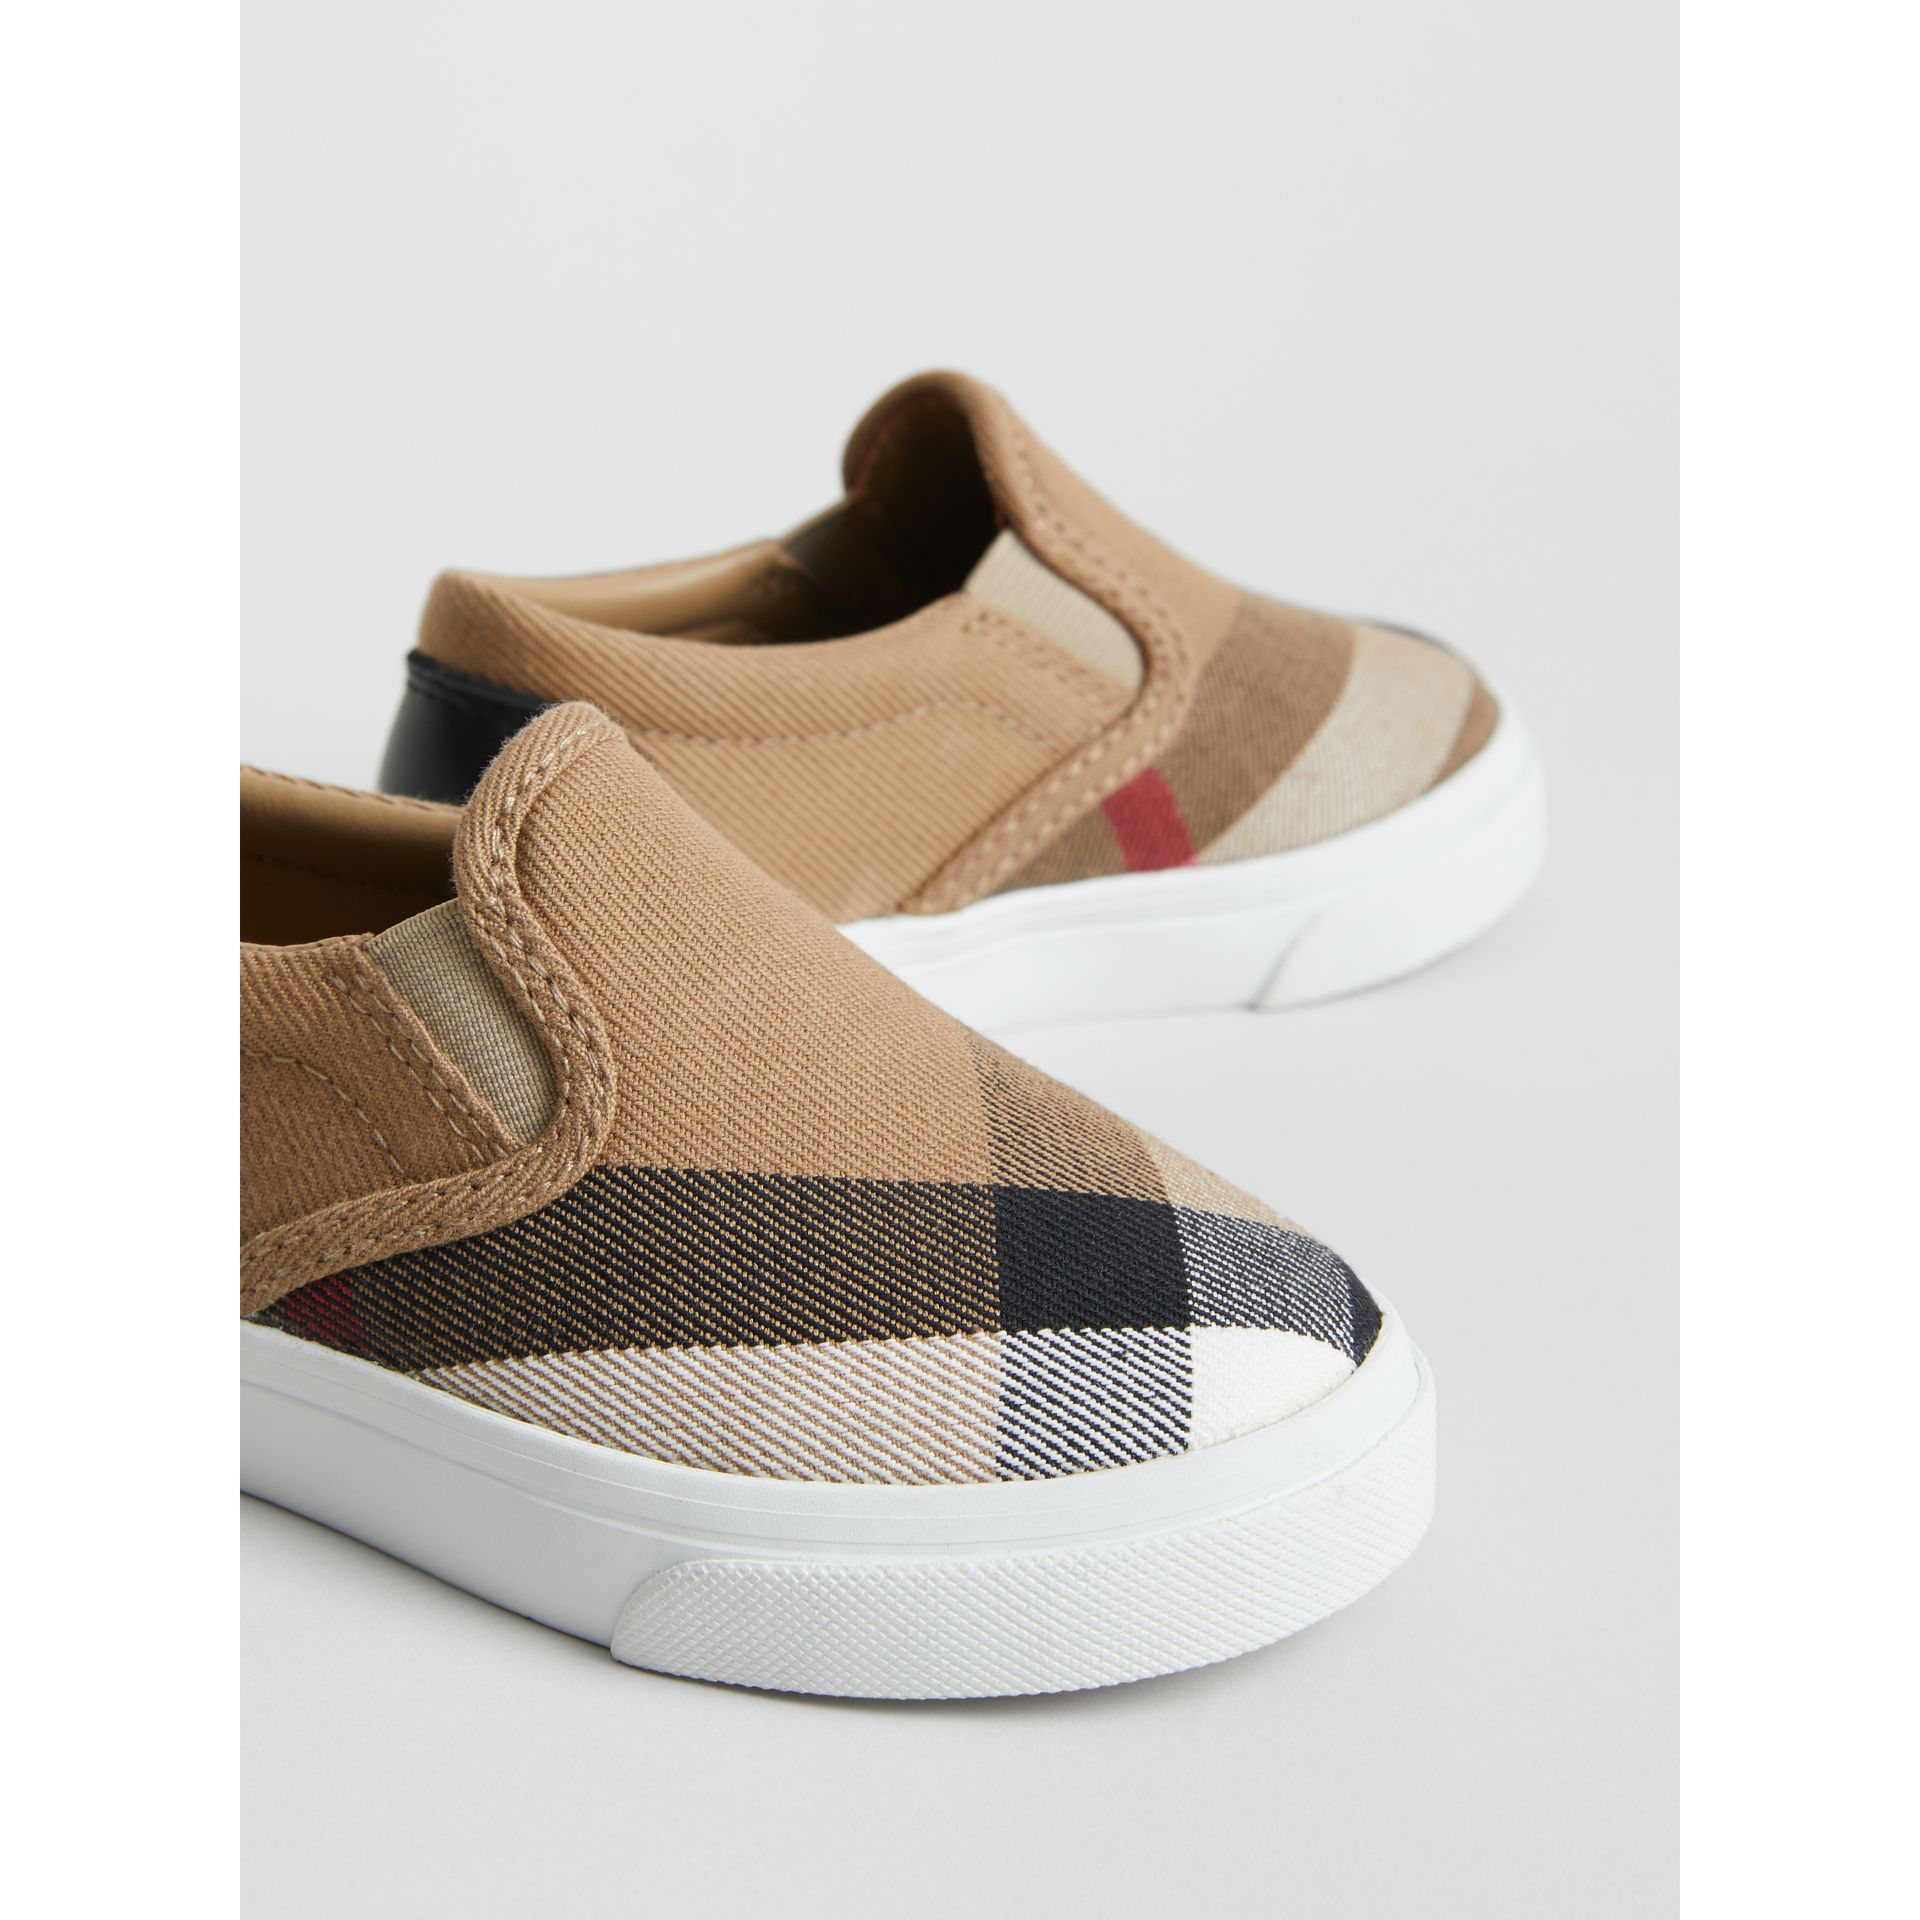 House Check and Leather Slip-on Sneakers in Classic/optic White | Burberry United States - gallery image 1